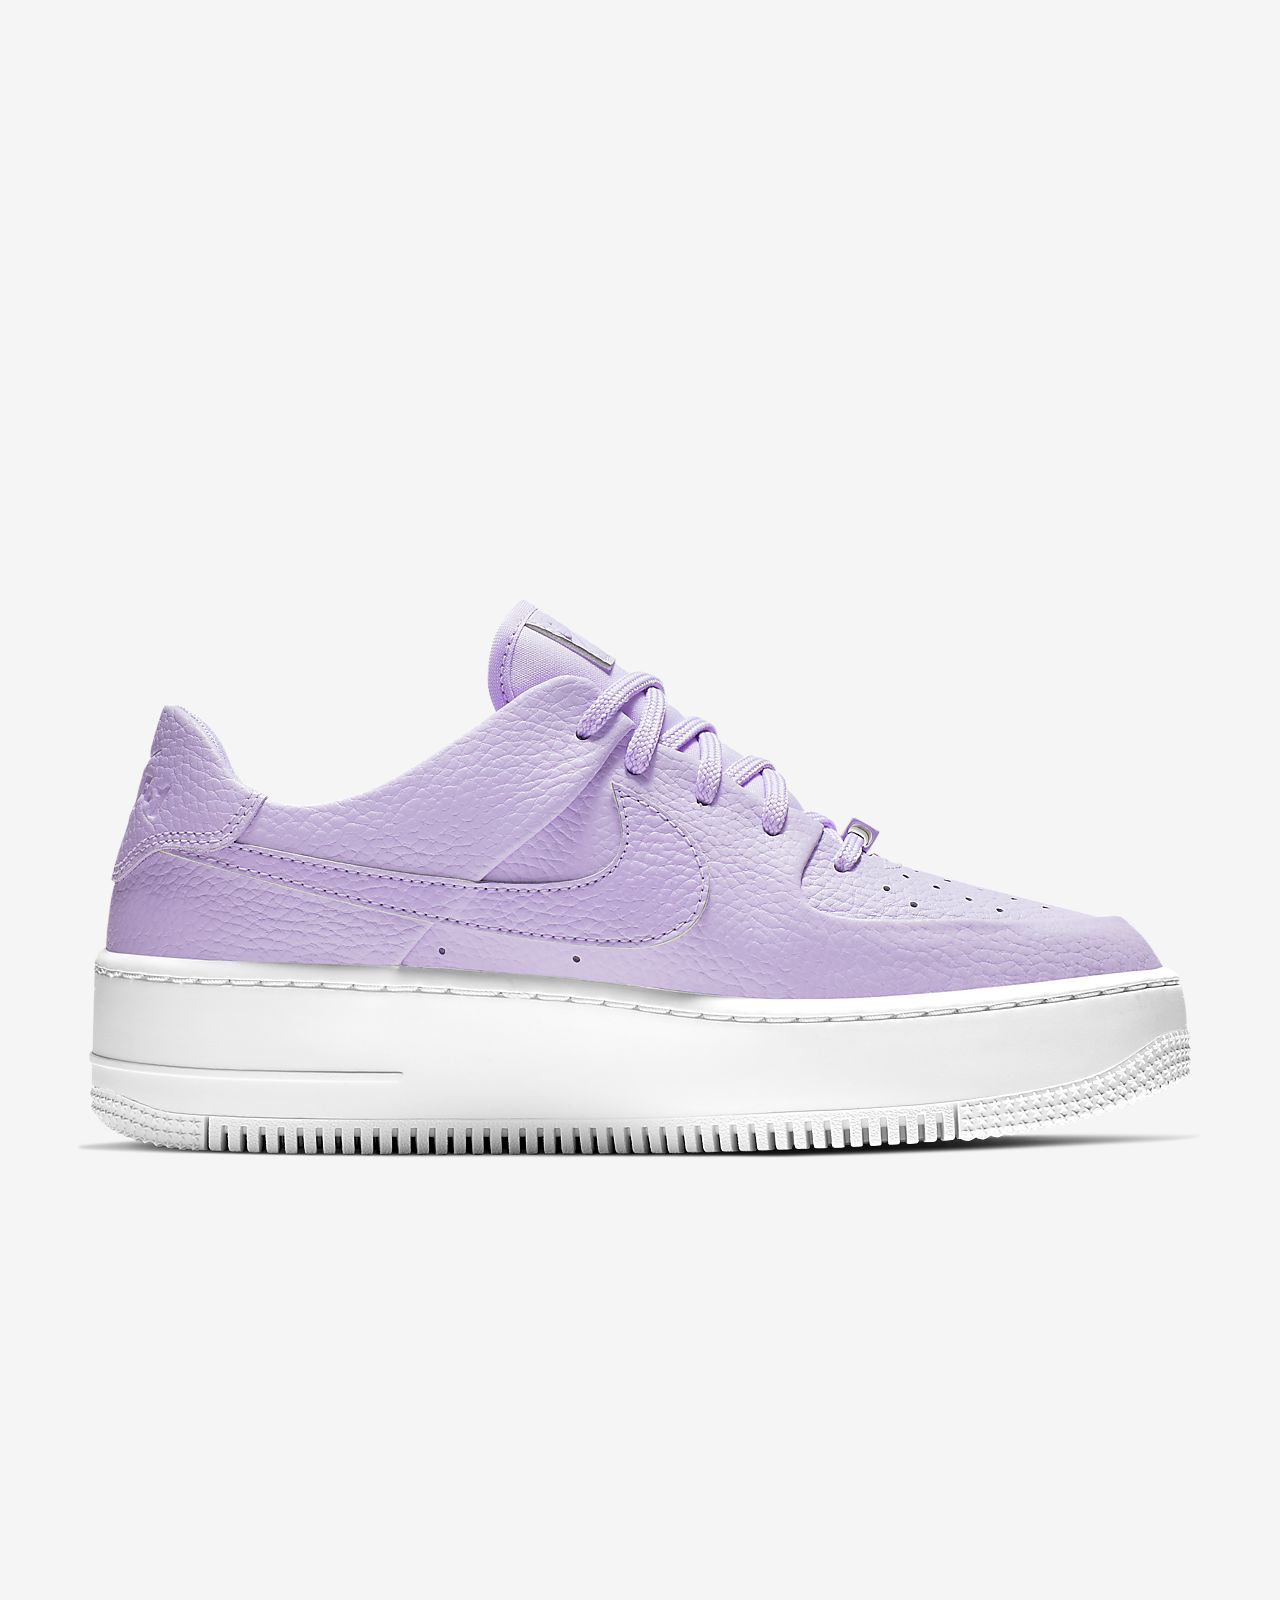 competitive price 5a645 9abf4 ... Nike Air Force 1 Sage Low Women s Shoe